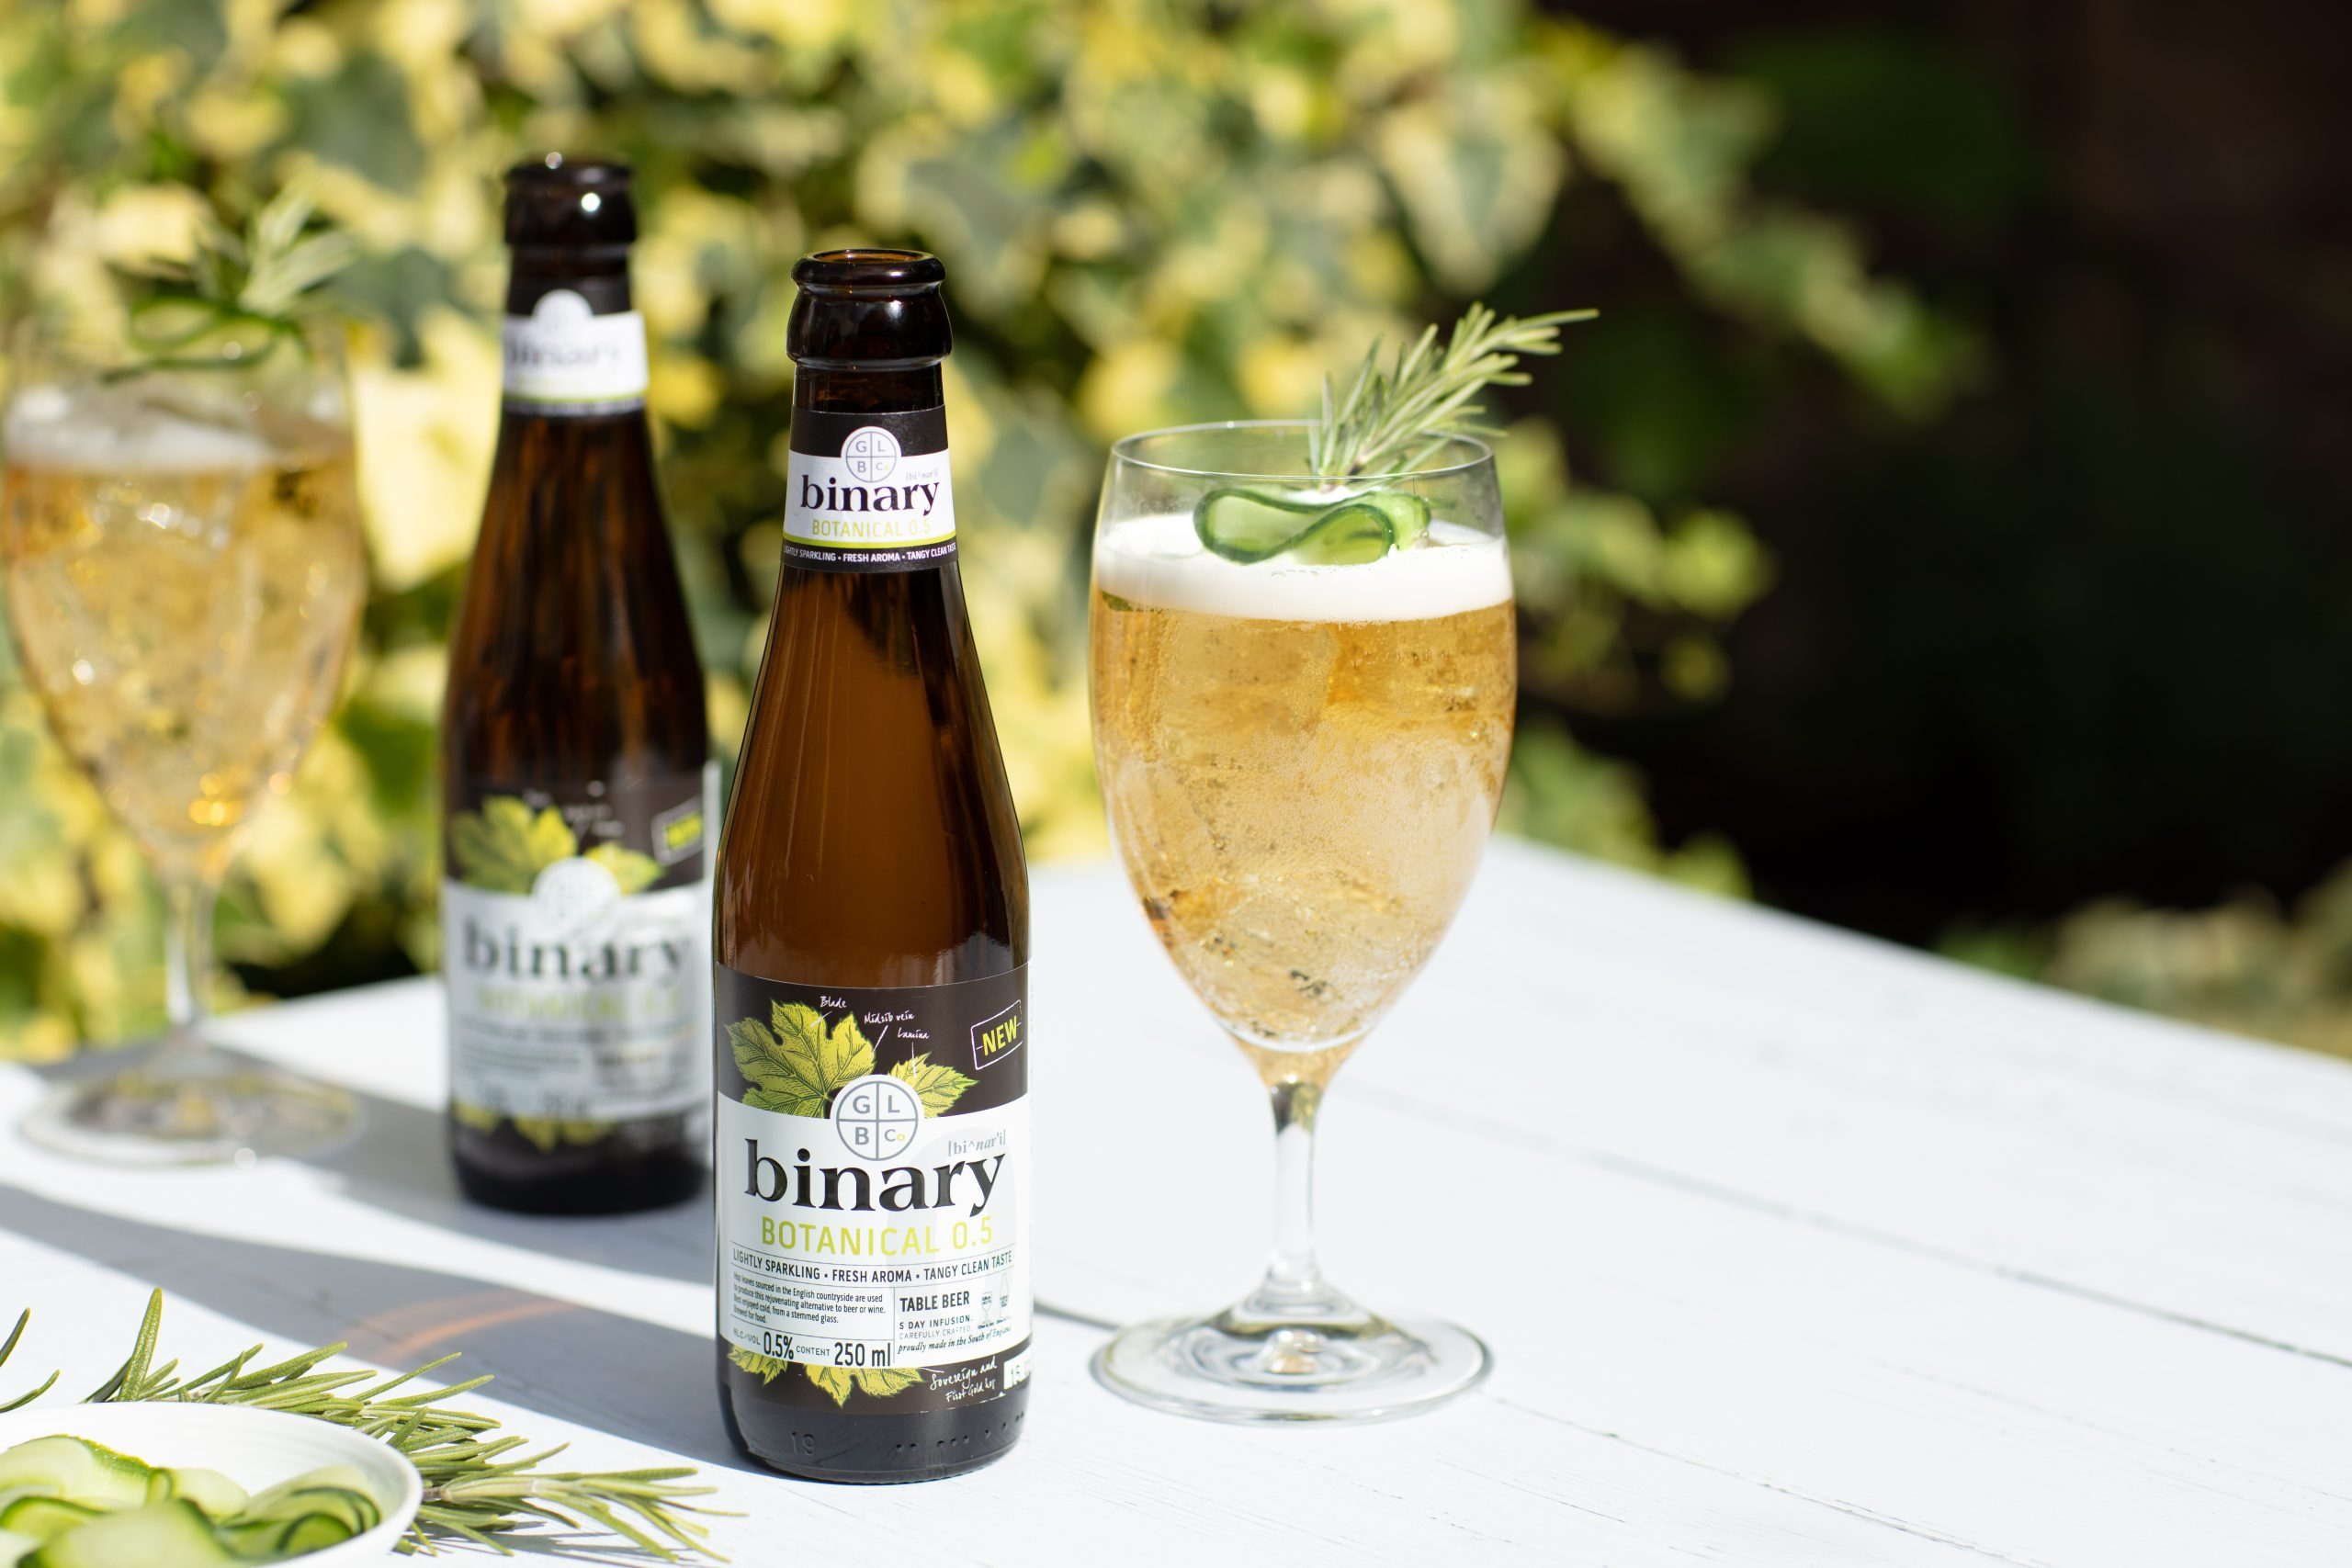 Drink this: The beer for wine lovers